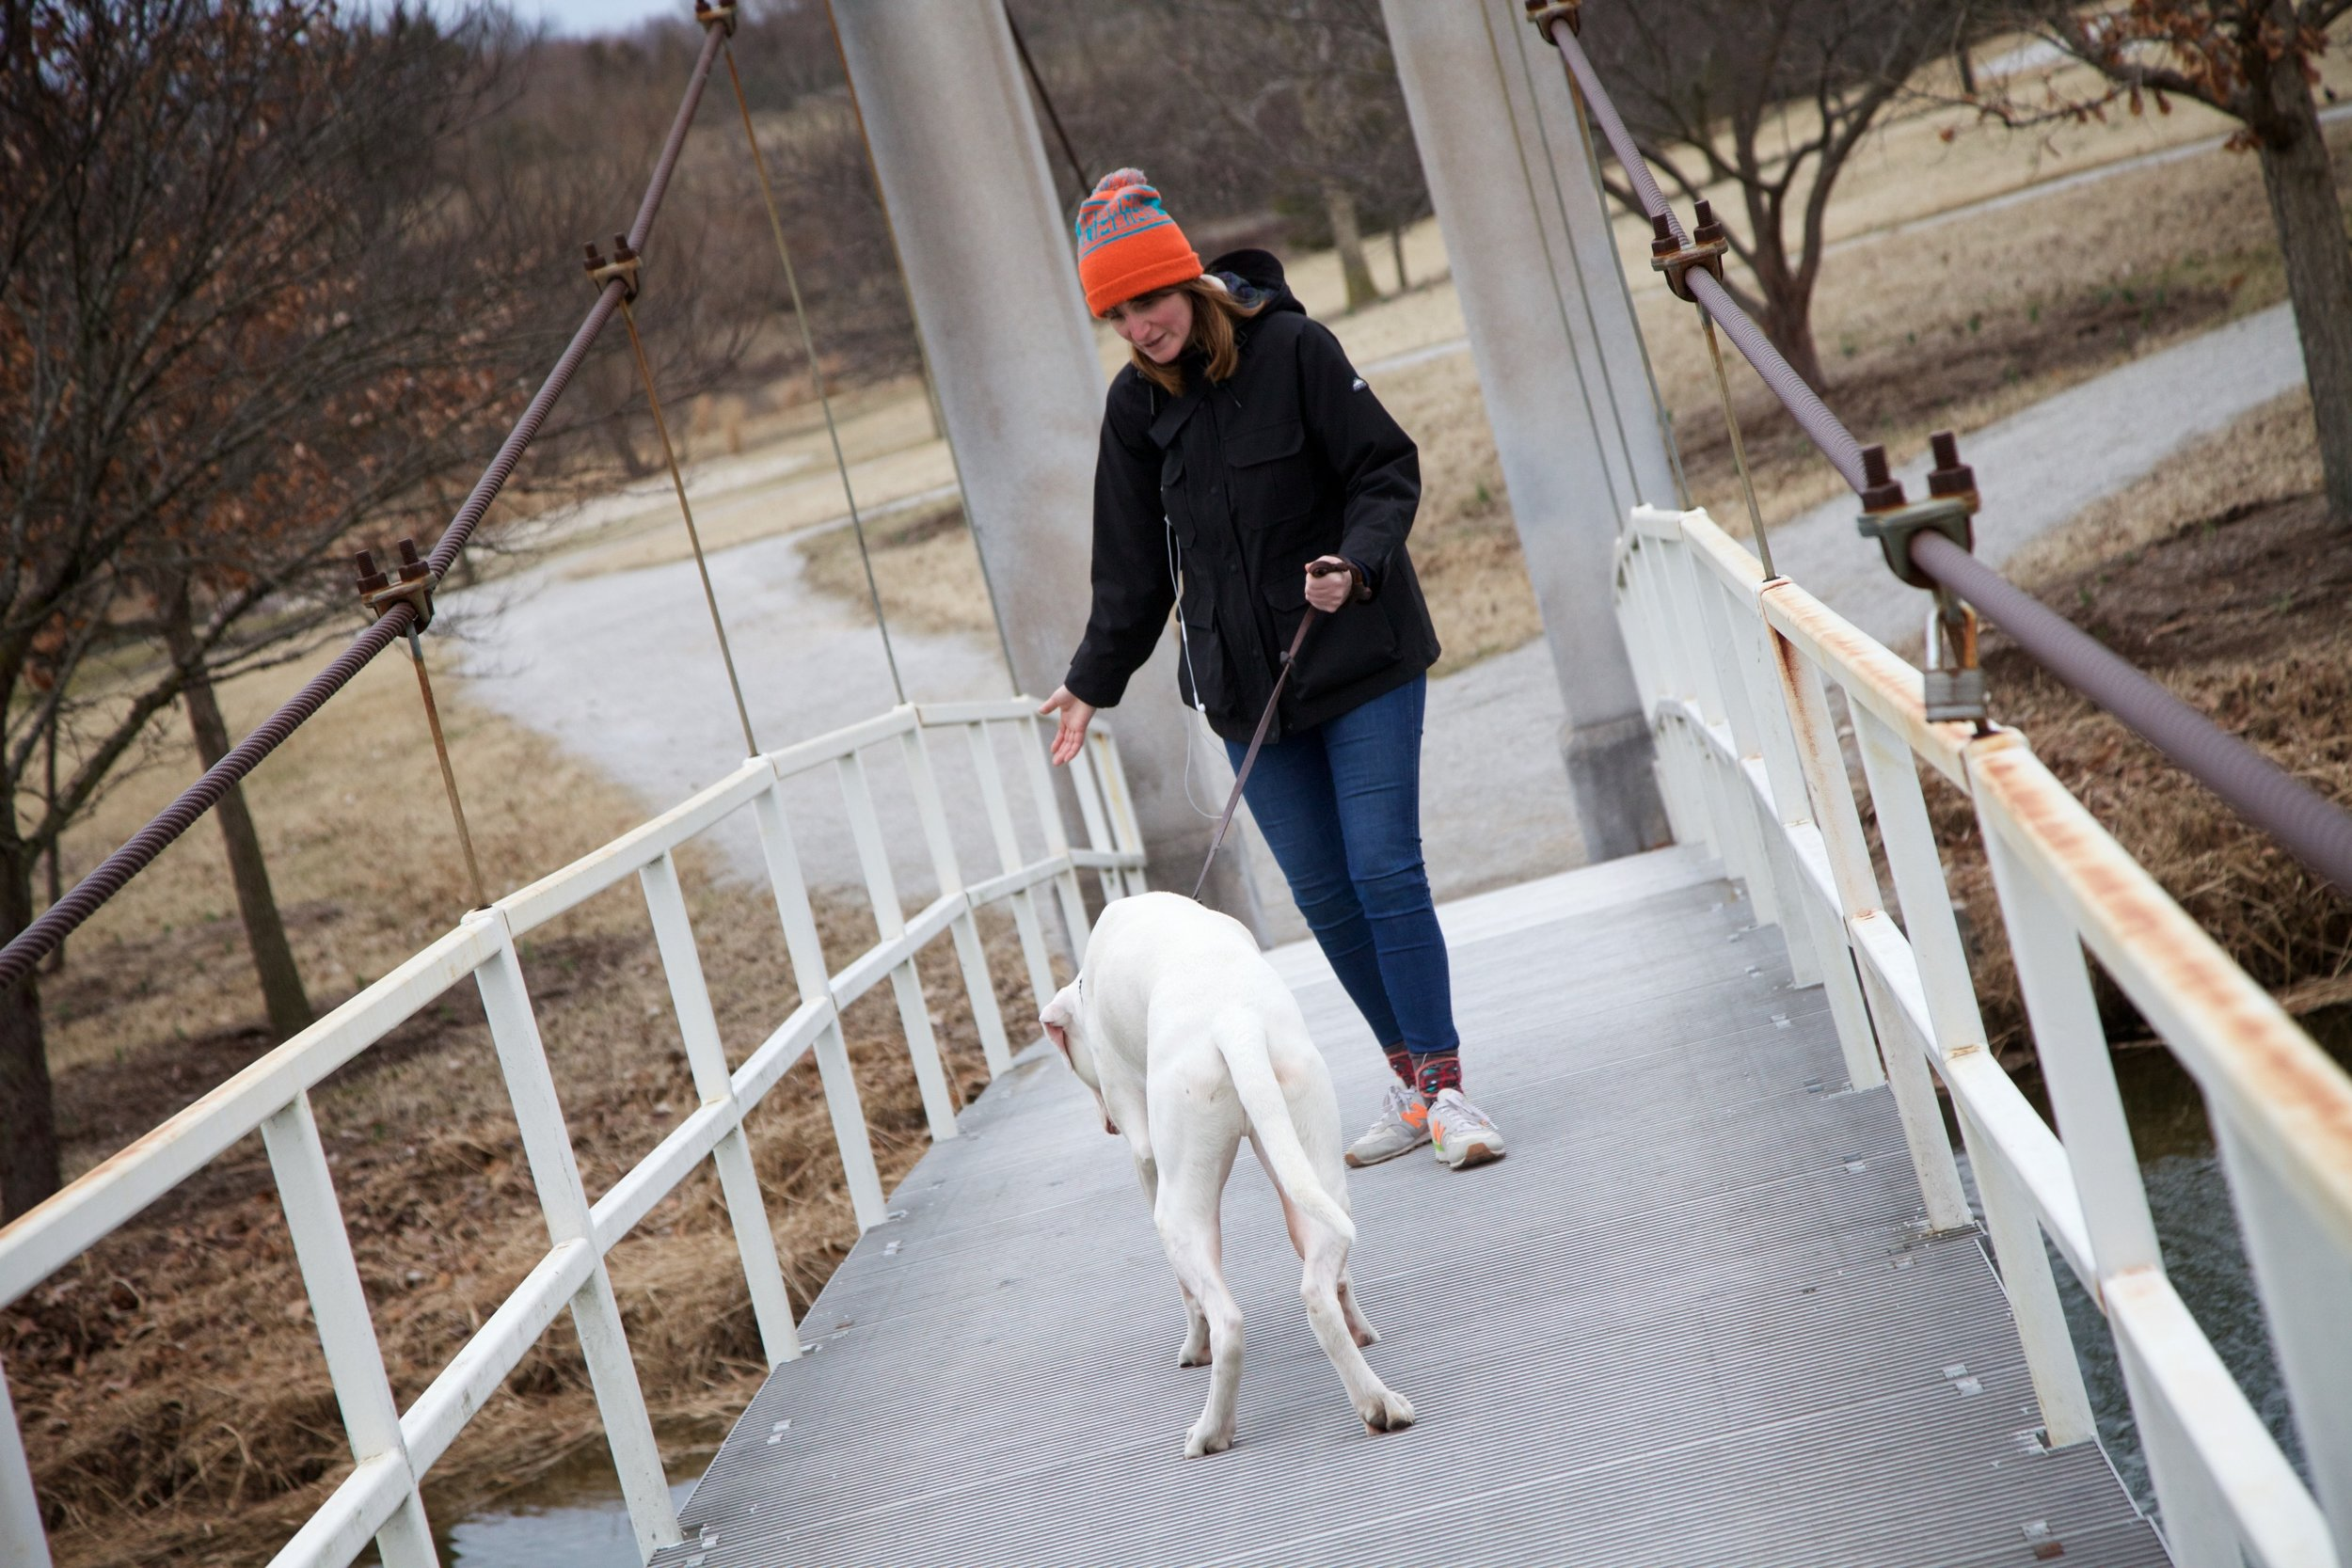 Scairdy dog navigates the suspension bridge with lots of gentle coaxing from his owner.